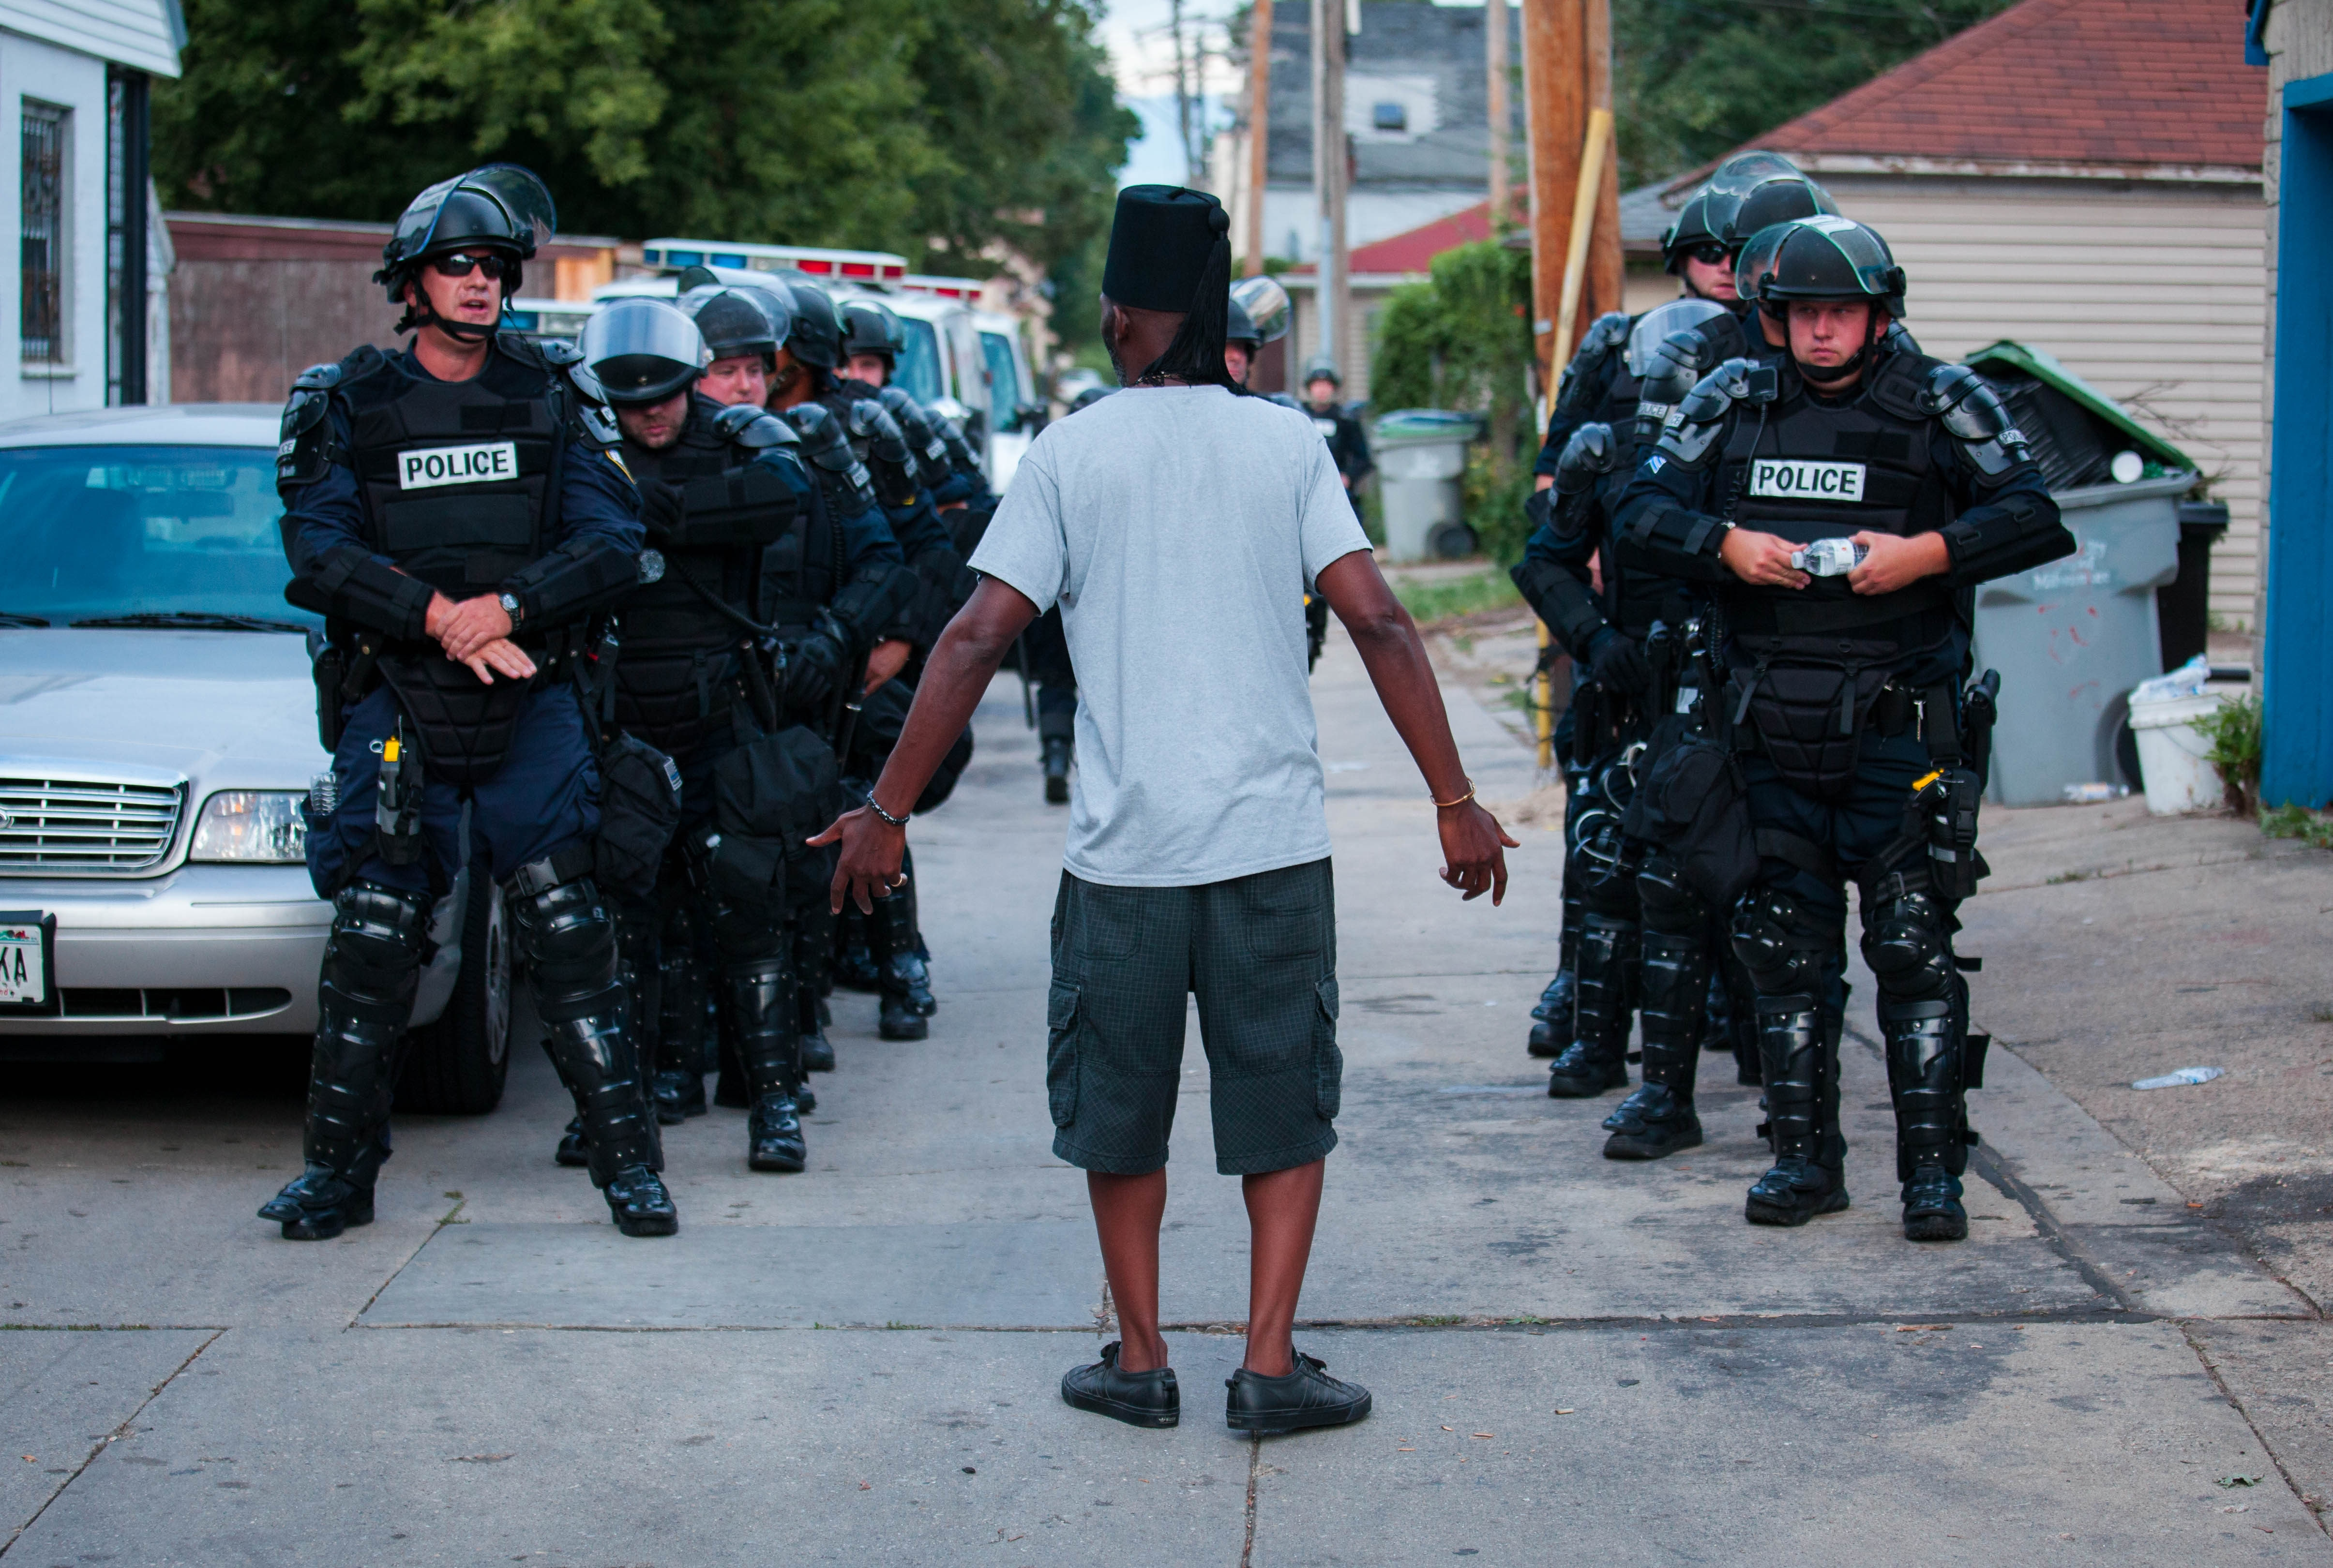 A man talks to police in riot gear as they wait in an alley after a second night of clashes between protesters and police on Aug. 15 in Milwaukee, Wis. Hundreds of angry people confronted police after an officer shot and killed a fleeing armed man. Statistics show there are more than 1,000 police-involved killings in this country every year.